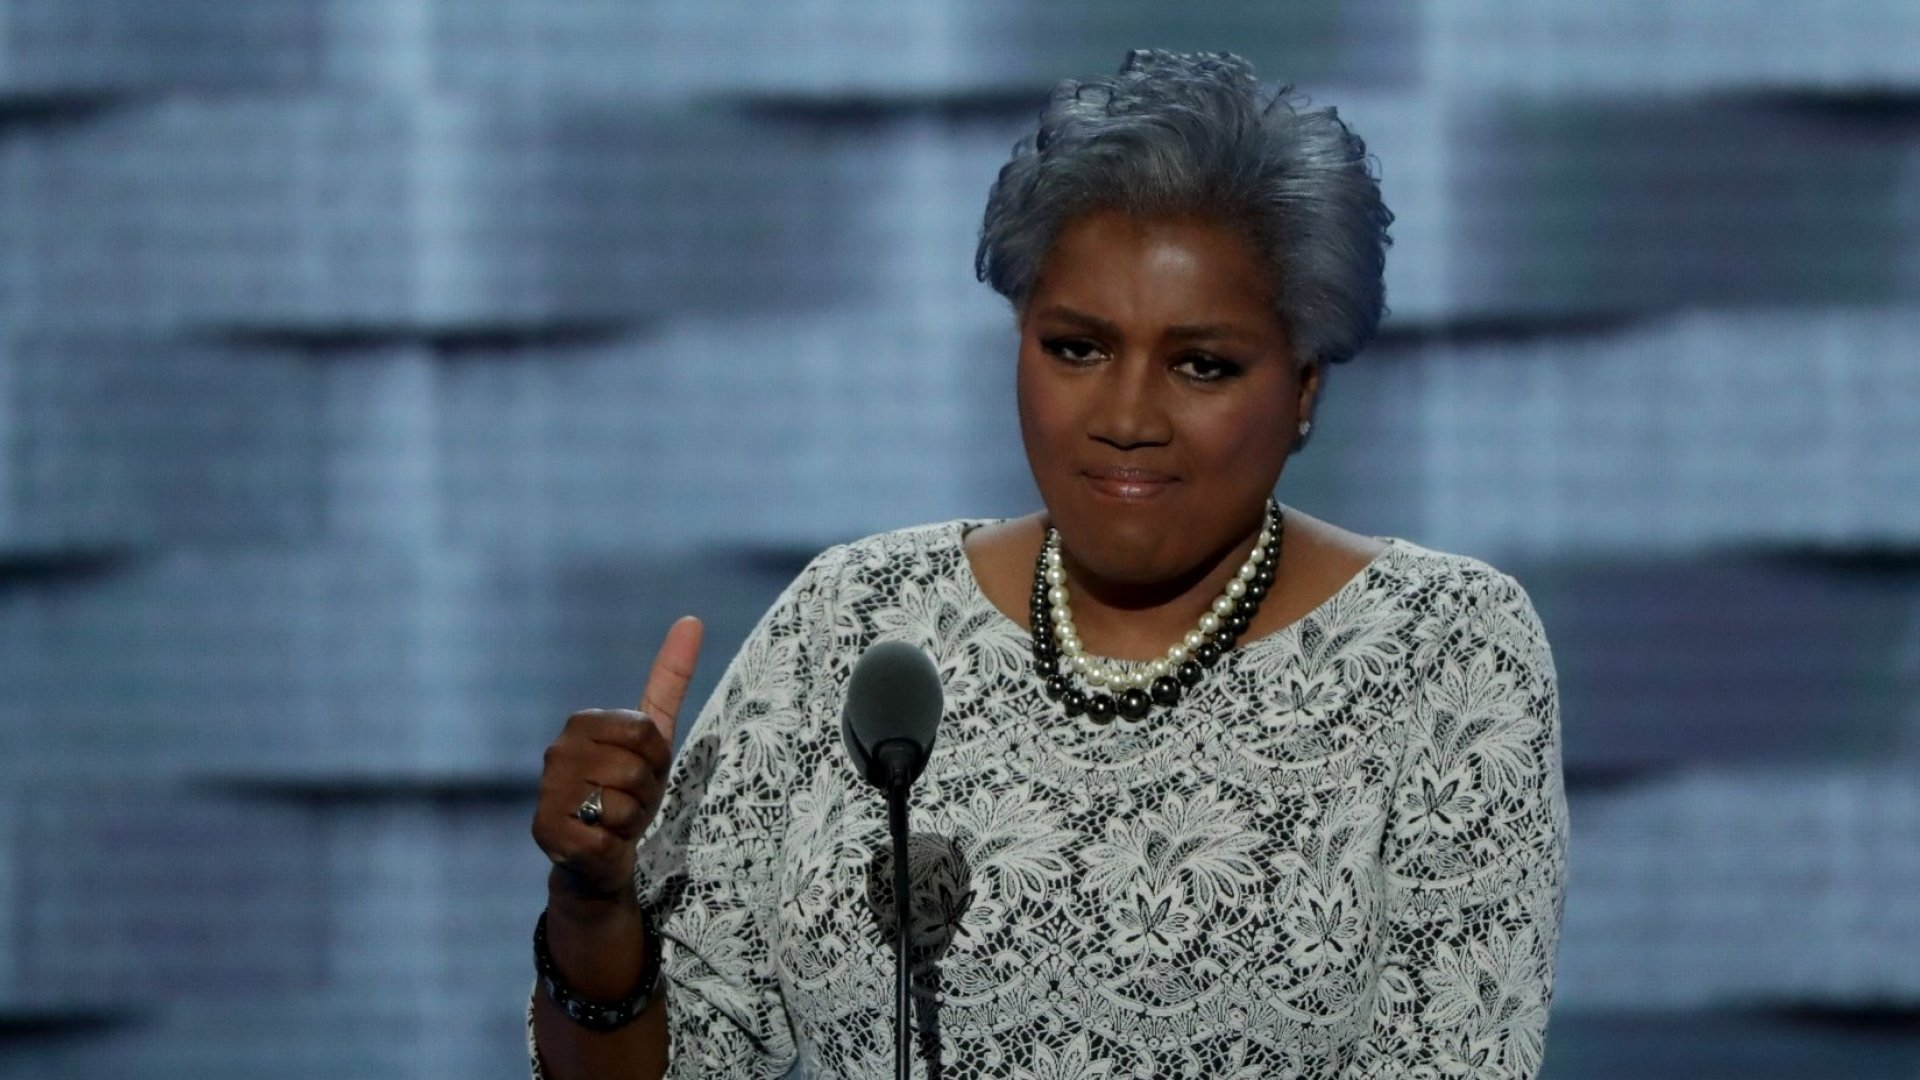 Interim chair of the Democratic National Committee Donna Brazile on the second day of the Democratic National Convention at the Wells Fargo Center, July 26, 2016, in Philadelphia.